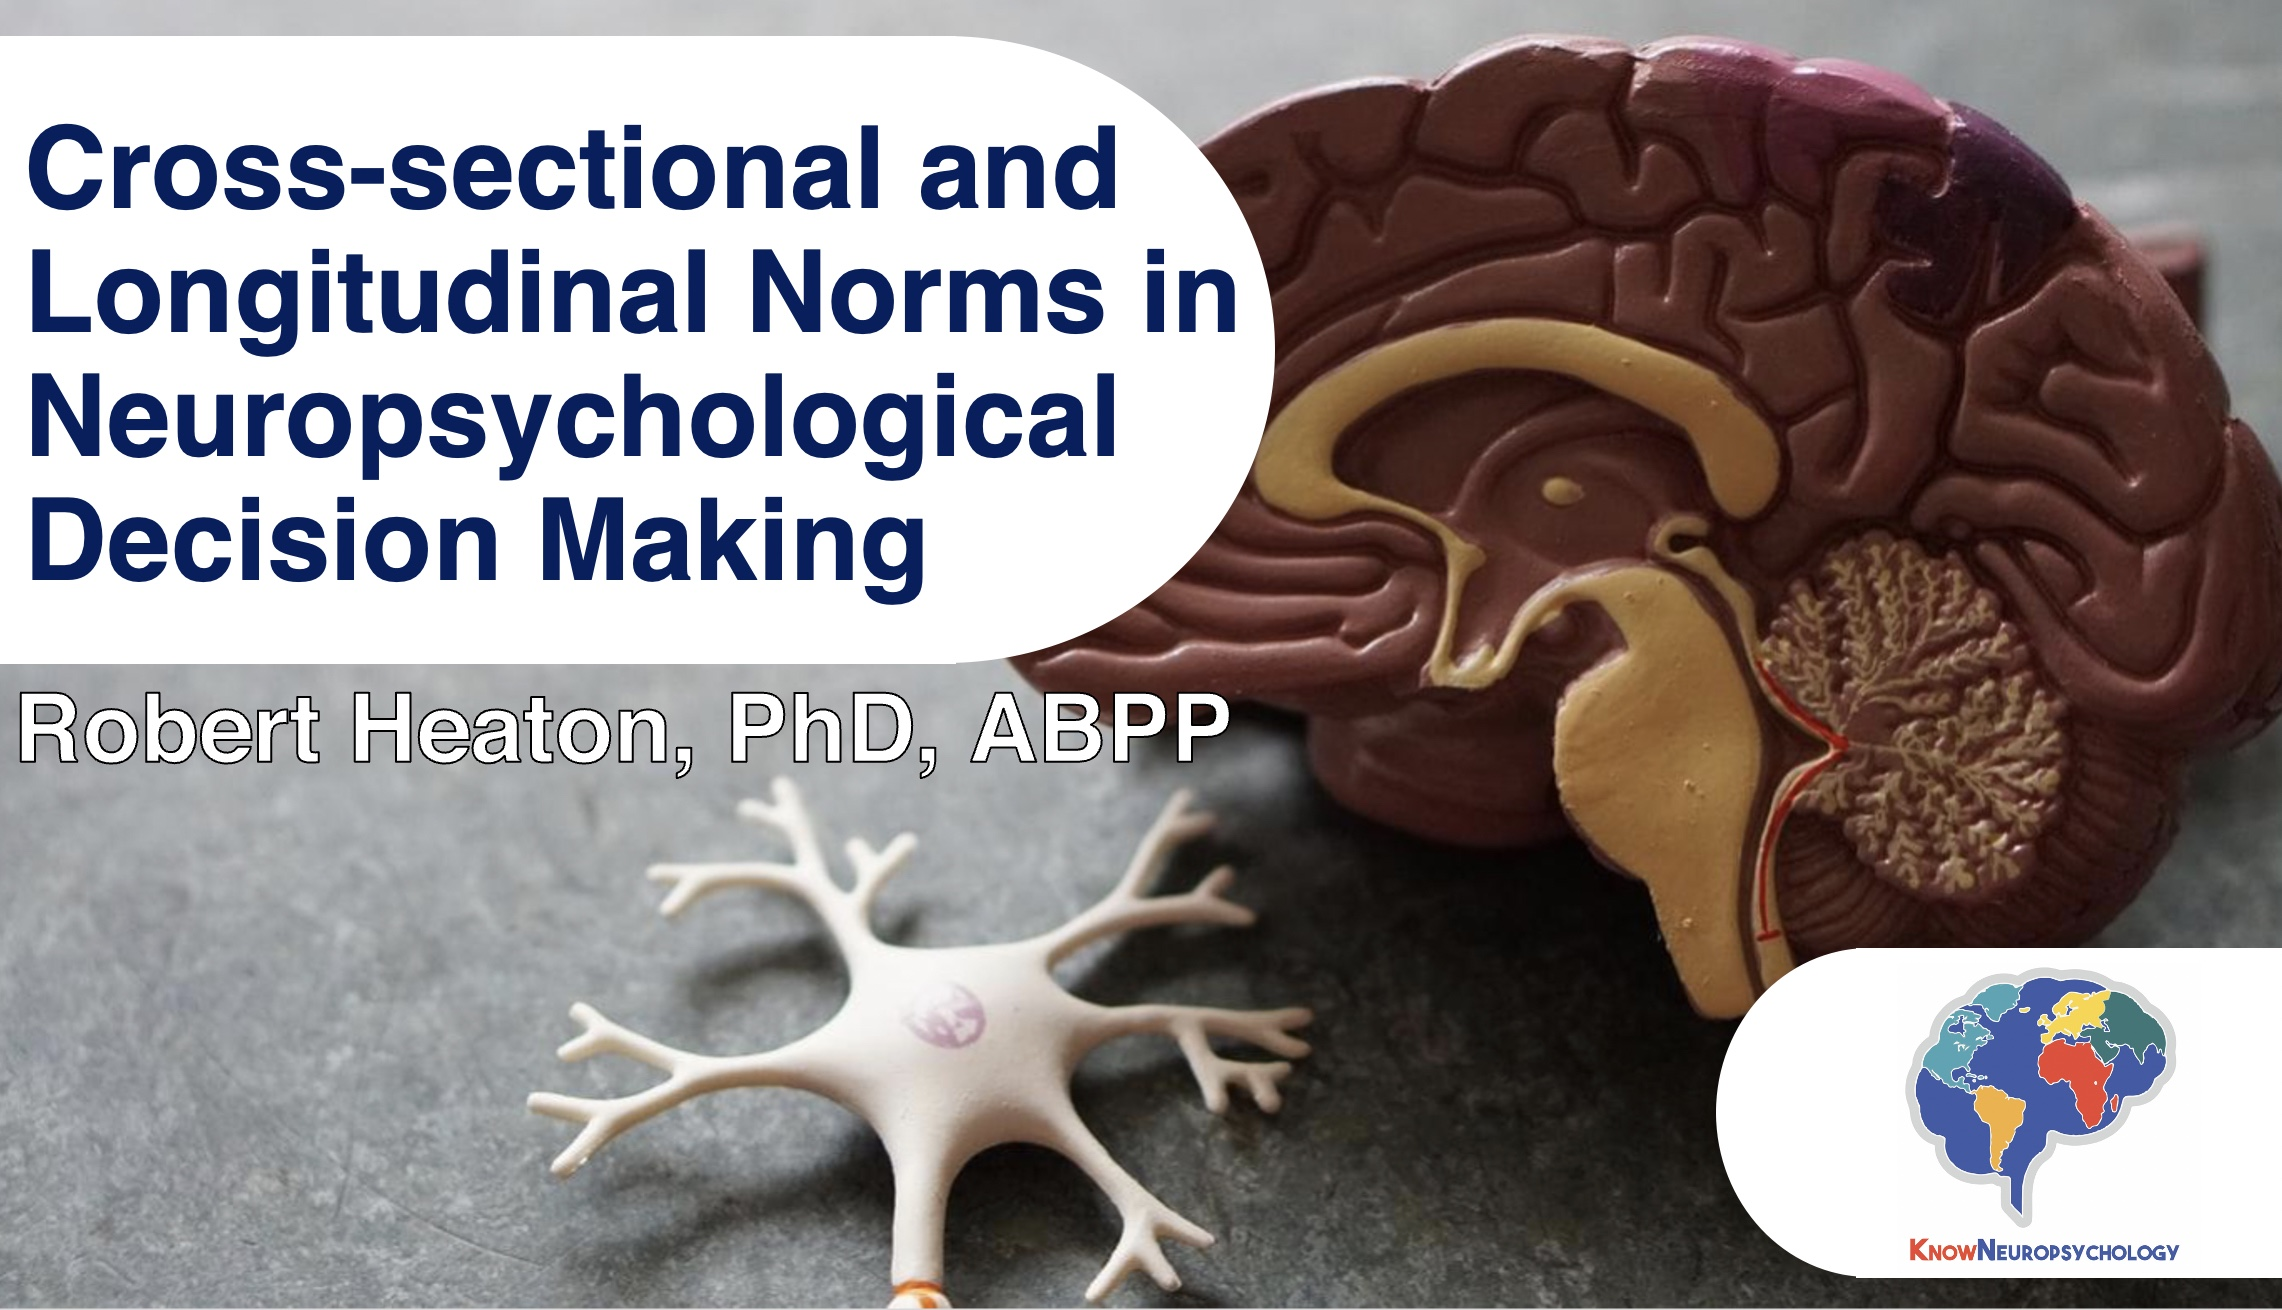 Cross-sectional and longitudinal norms in neuropsychological decision making with Dr. Robert Heaton